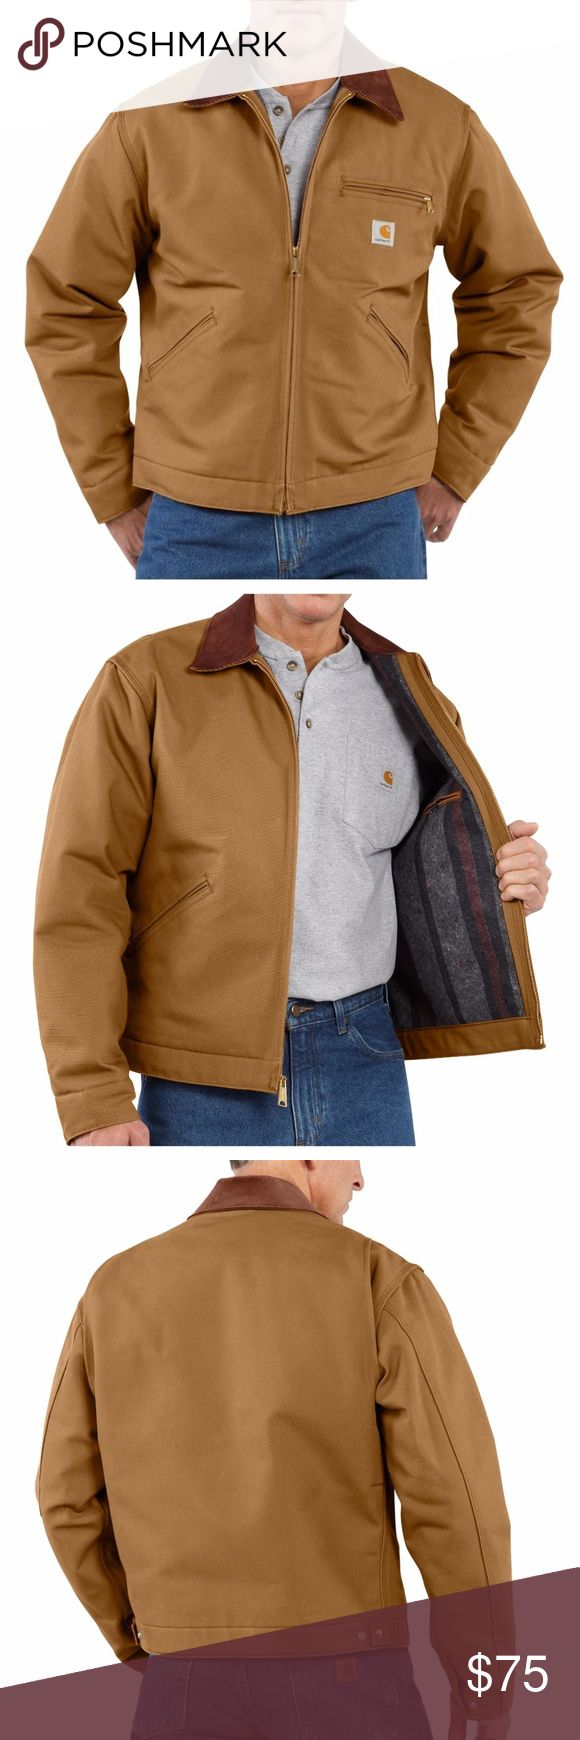 Carharrt Brown Duck Detroit Blanket Lined Jacket One of their most popular styles, this classic Carhartt duck jacket is the perfect fit for the working man. This jacket features a corduroy-trimmed collar with snaps for optional hood, blanket lining in body, and quilted-nylon lining in sleeves. This is a brand new coat, but the tags have fallen off. The size sticker tag is intact on the sleeve, so you can see this has never been worn. #52WSDW67 Carhartt Jackets & Coats